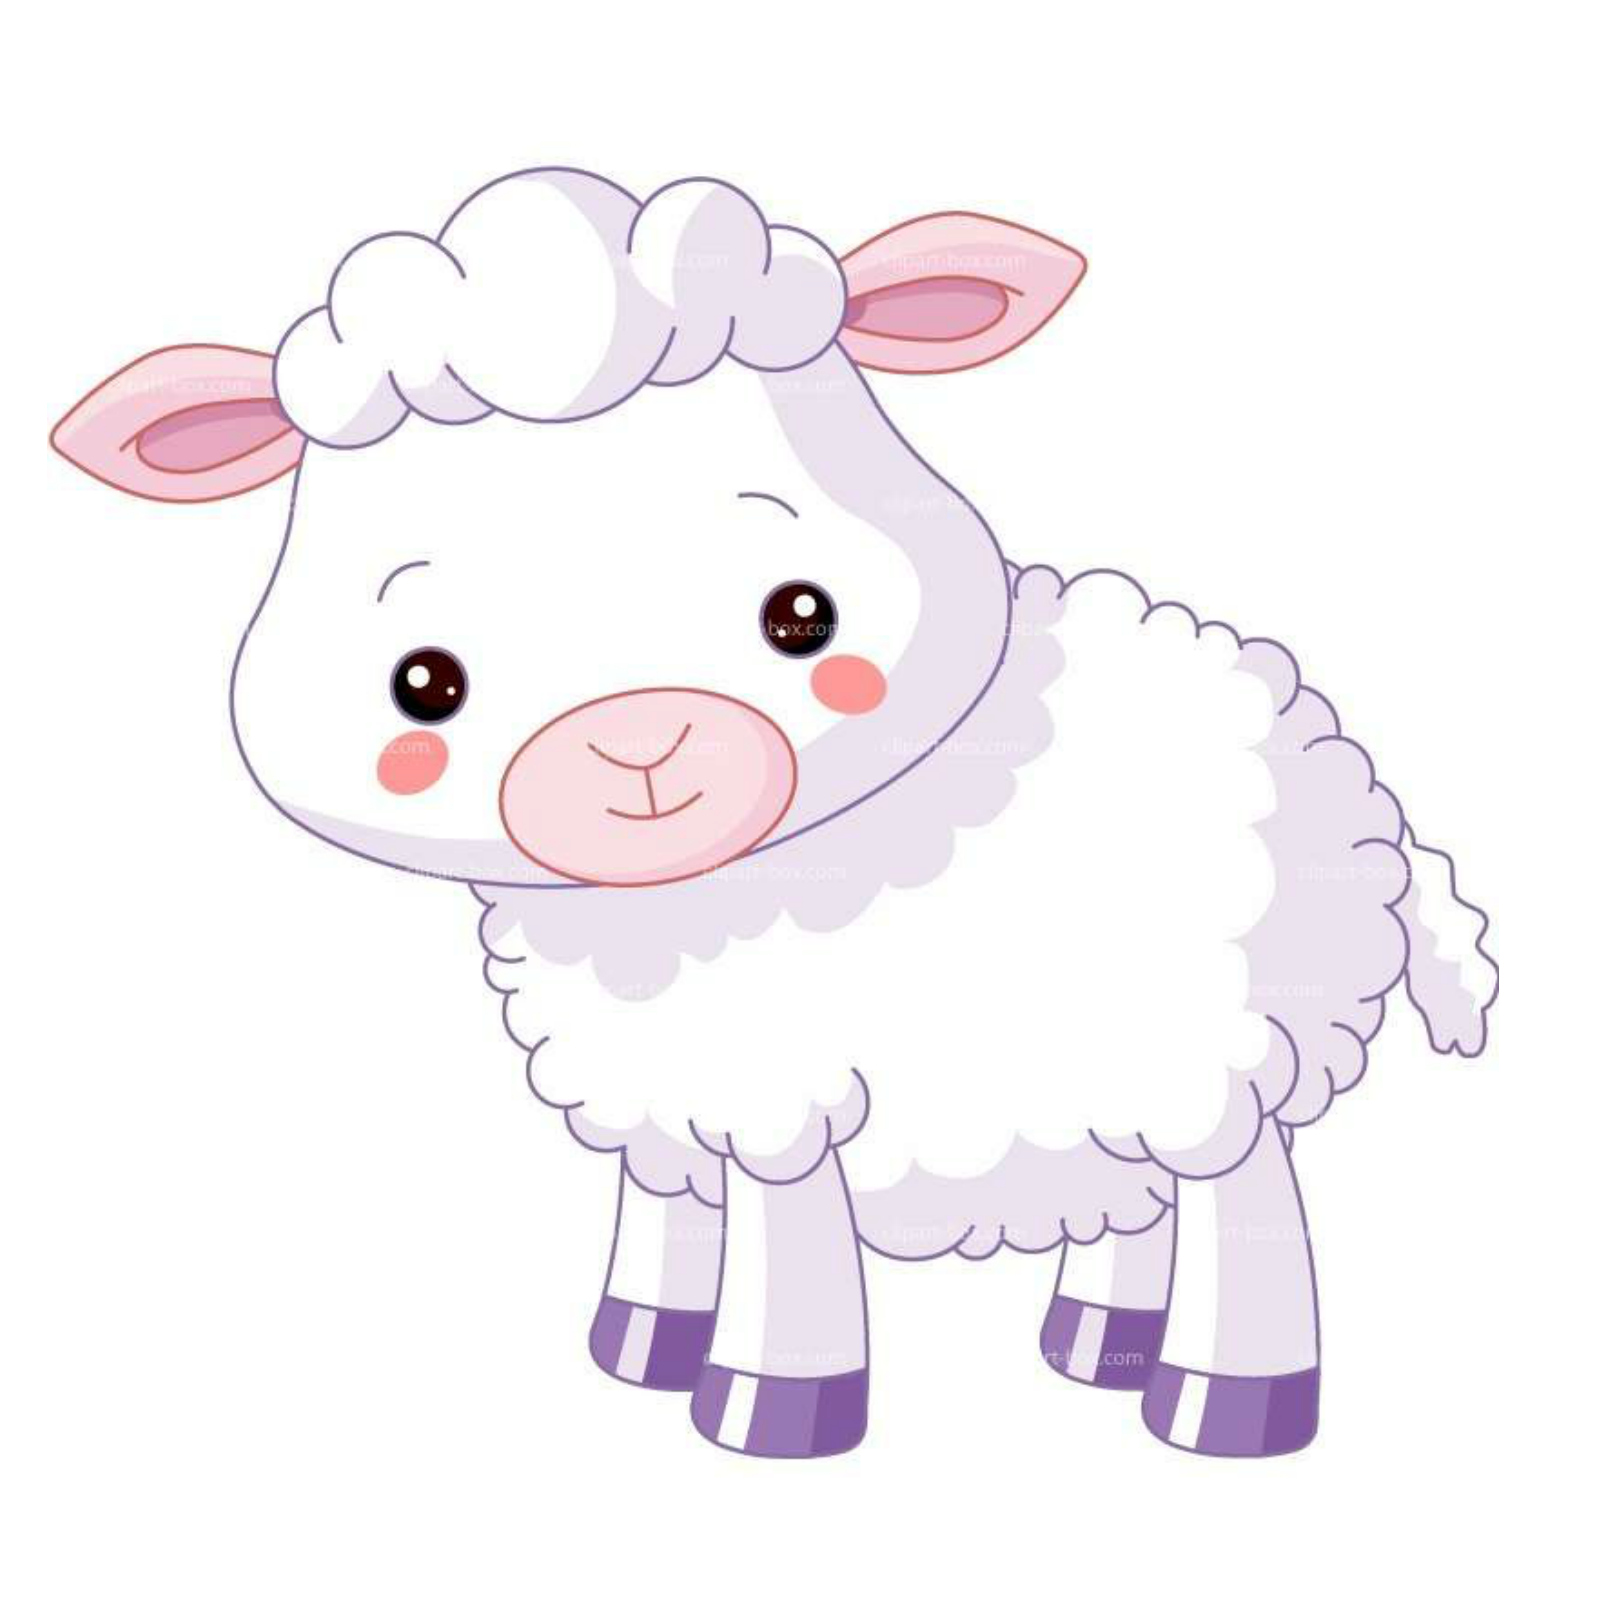 Lambs 2019-2020 - 2 years old before Aug 1, 2019$27.00/Day (9:00am-1:00pm)$39.00/Day (8:30am-4:30pm)8 Students:1 Teacher